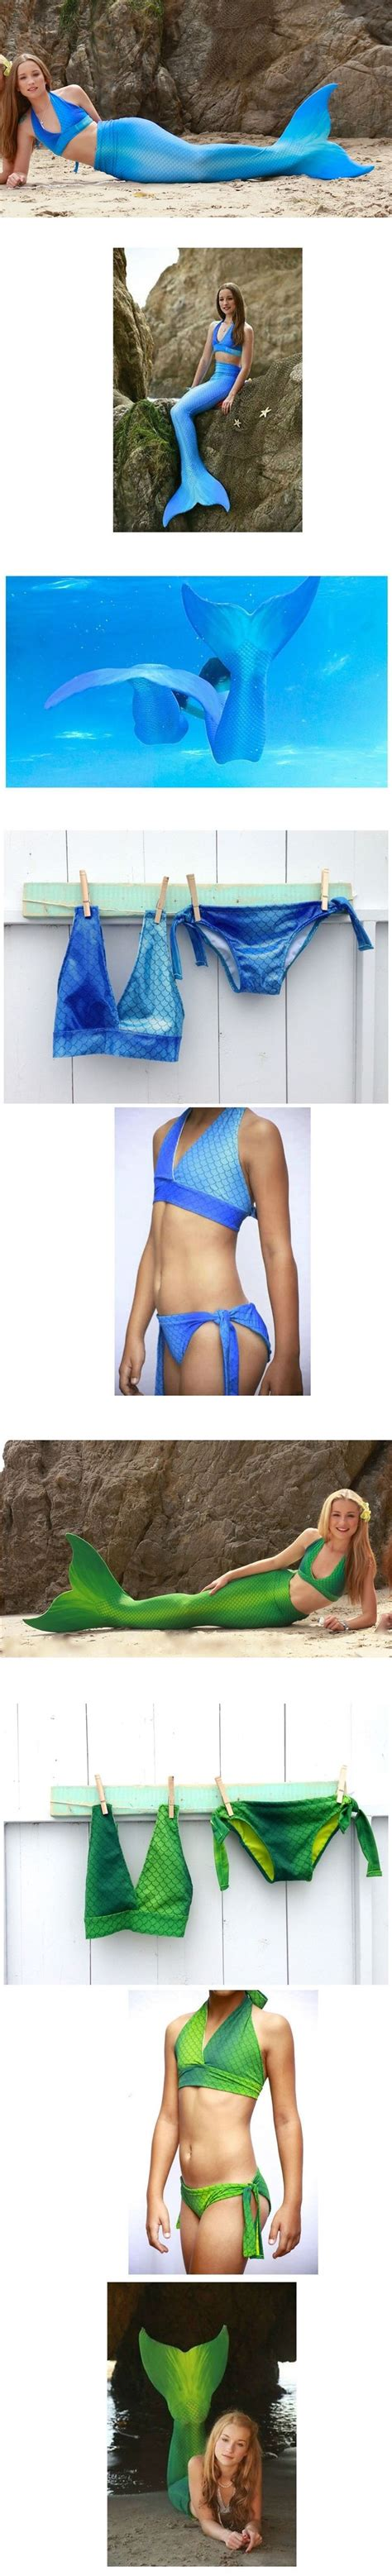 mermaid l for sale best 25 mermaid tail swimsuit ideas only on pinterest